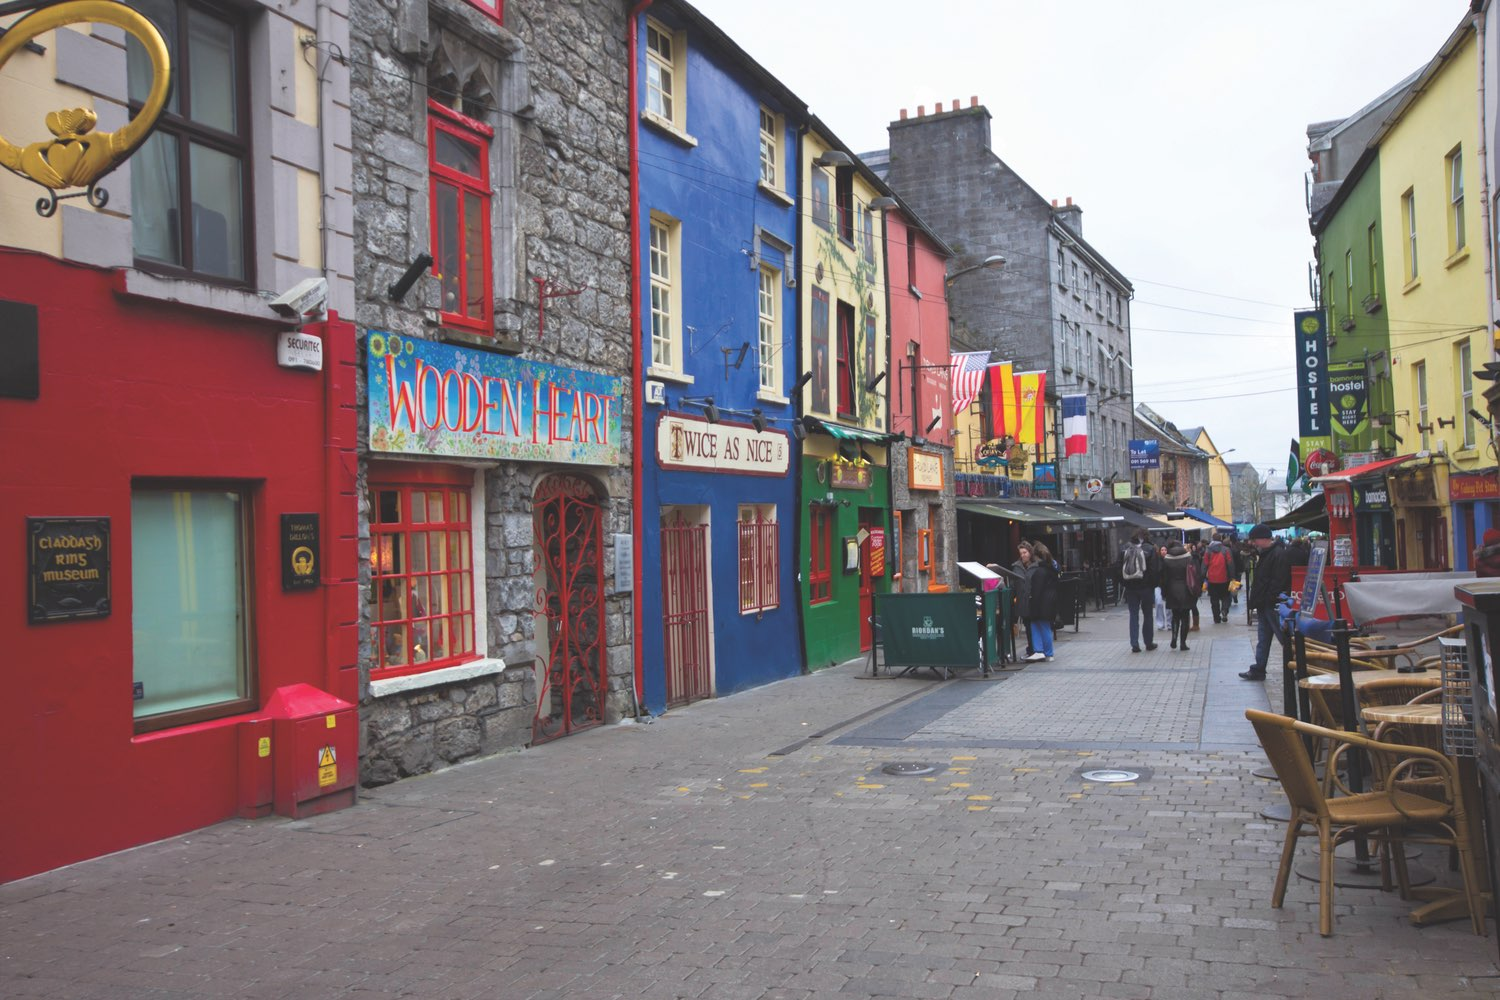 Streetscape in historic Galway City—a medieval coastal city that is now a lively cultural center and popular tourist destination